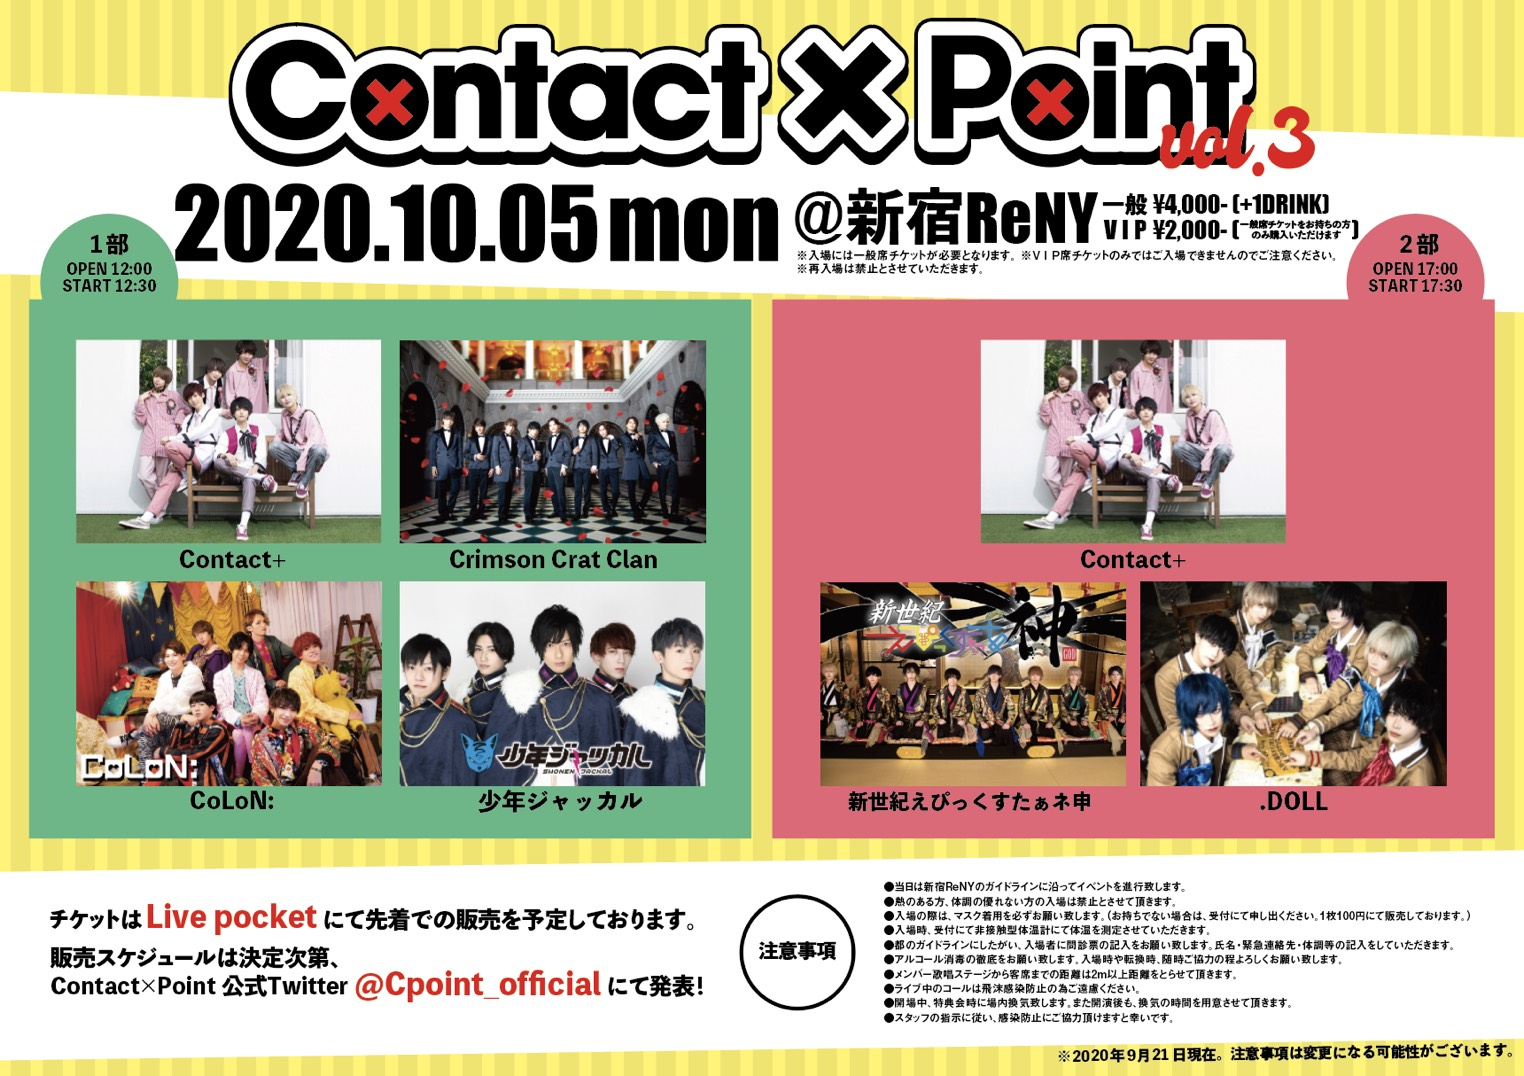 「Contact×Point Vol.3」二部